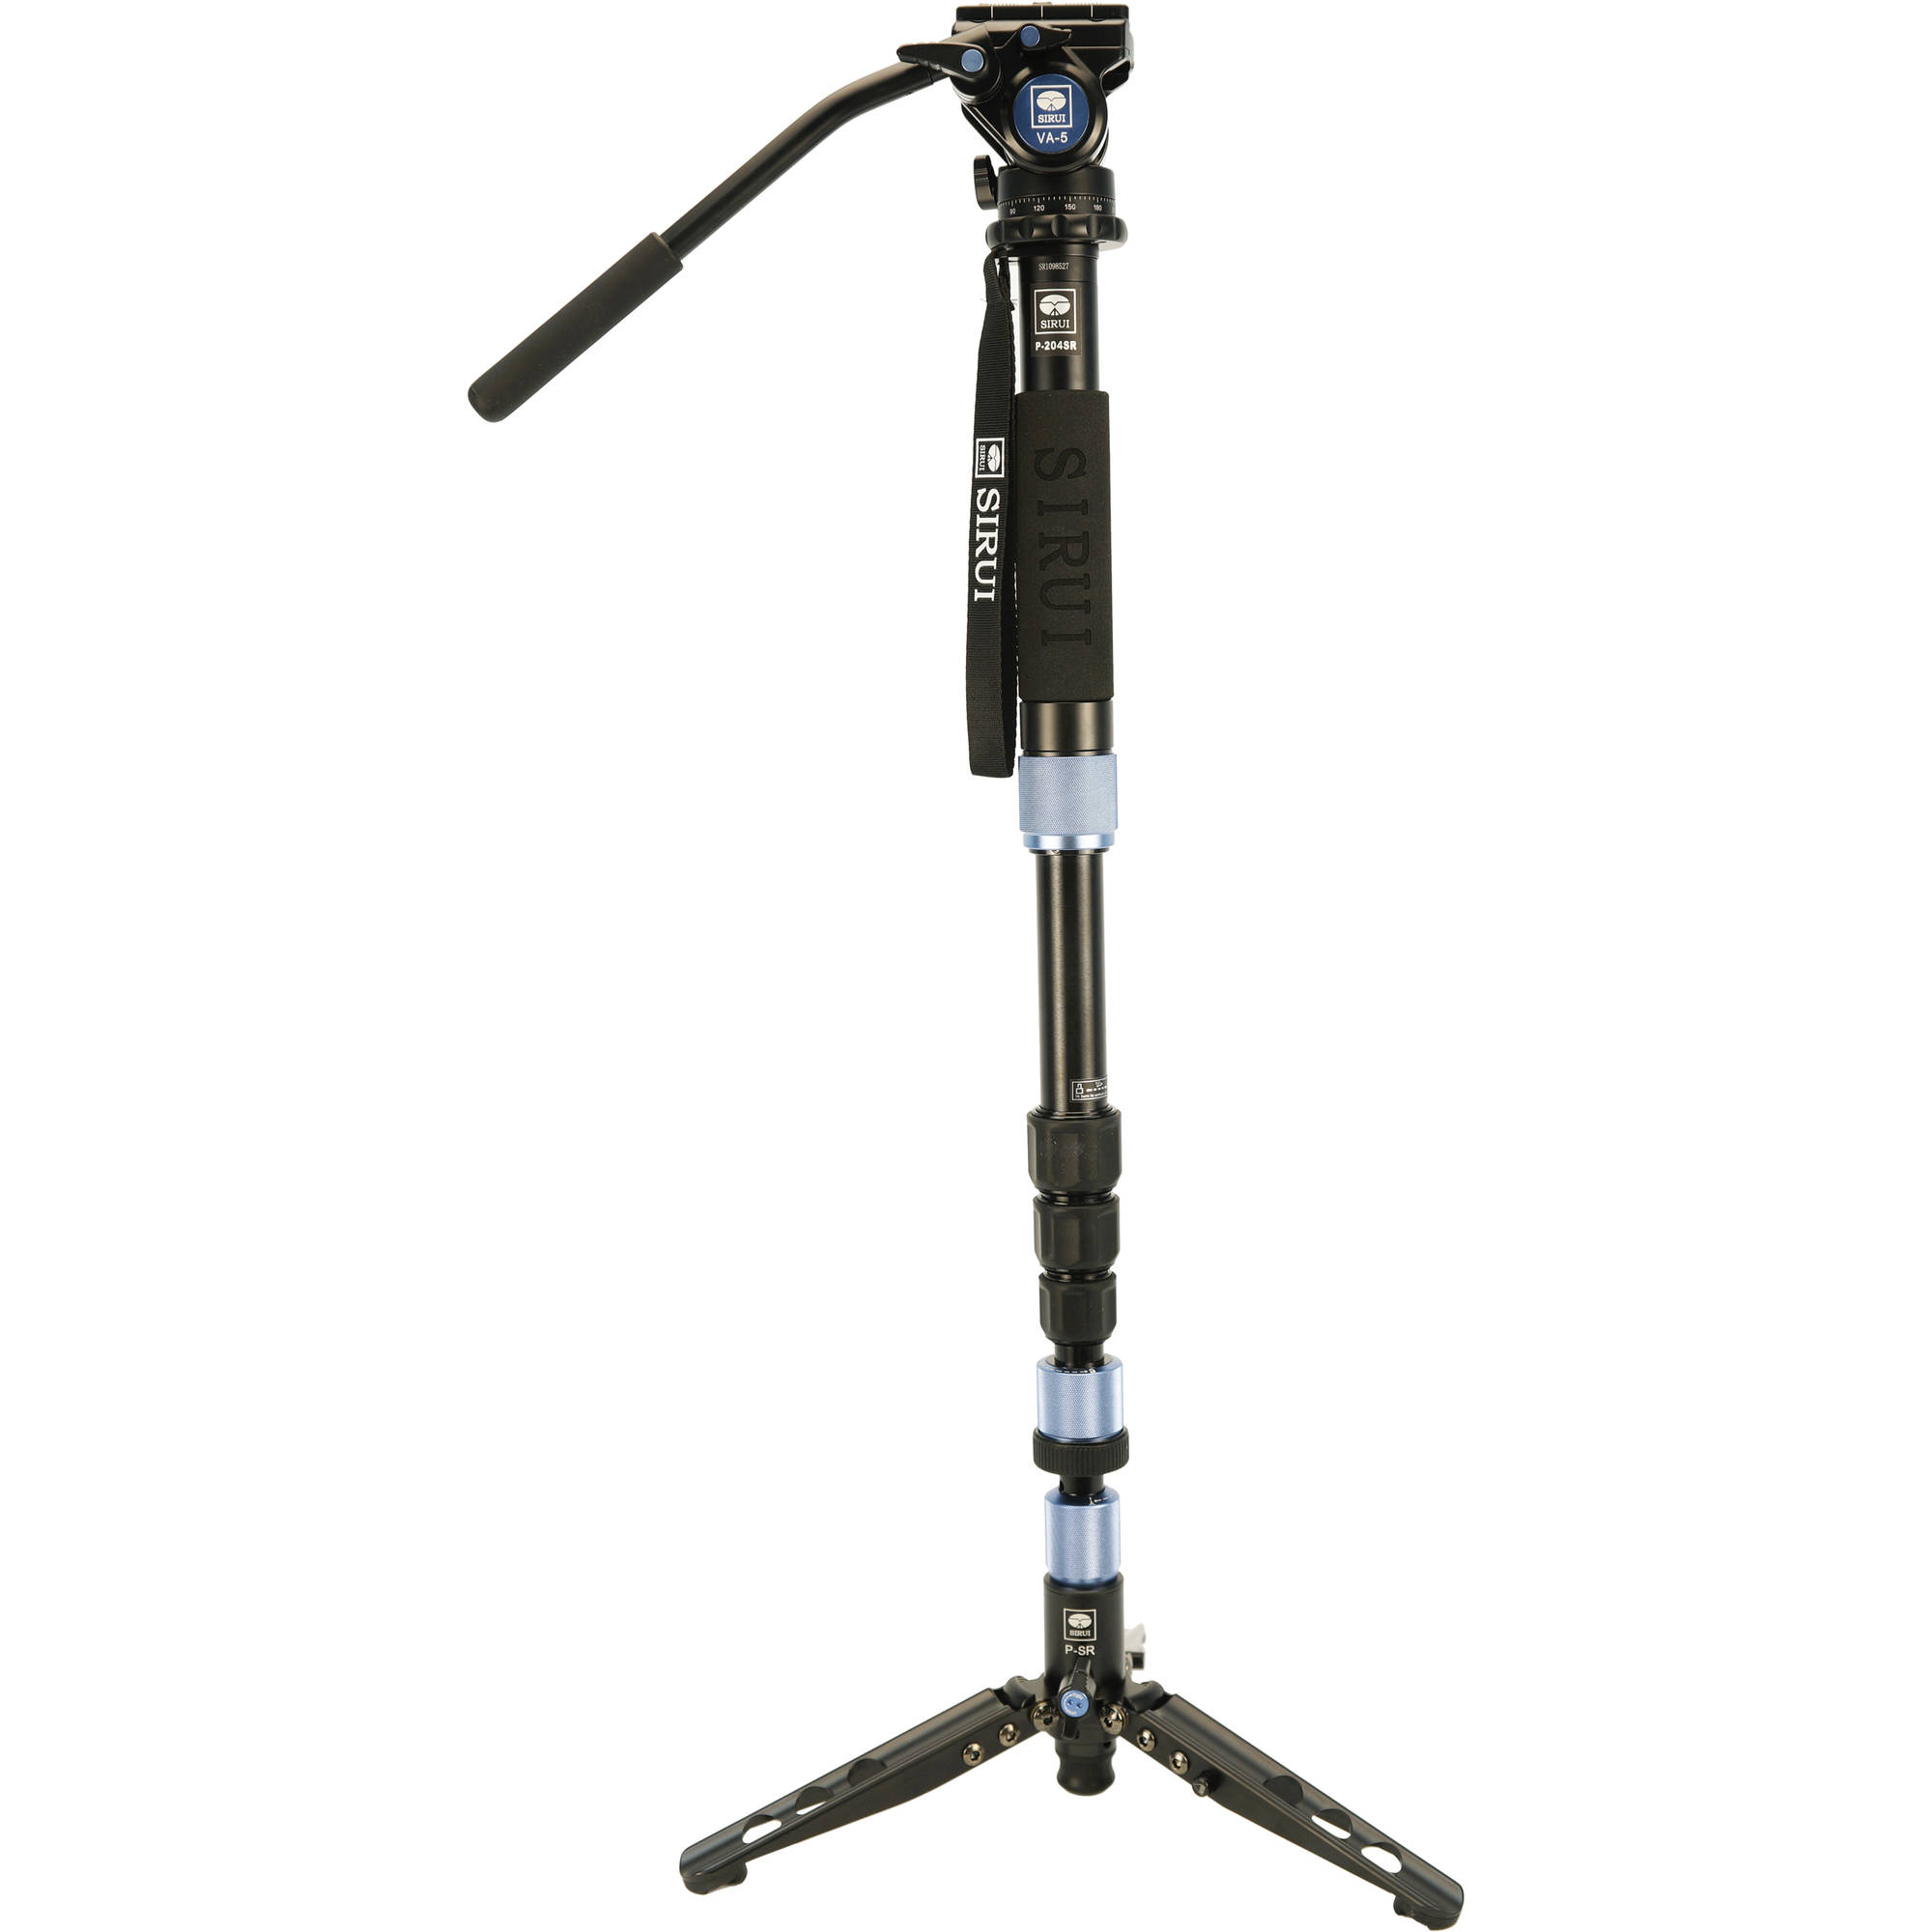 Sirui P-204SR Aluminum Monopod with VA5 Head